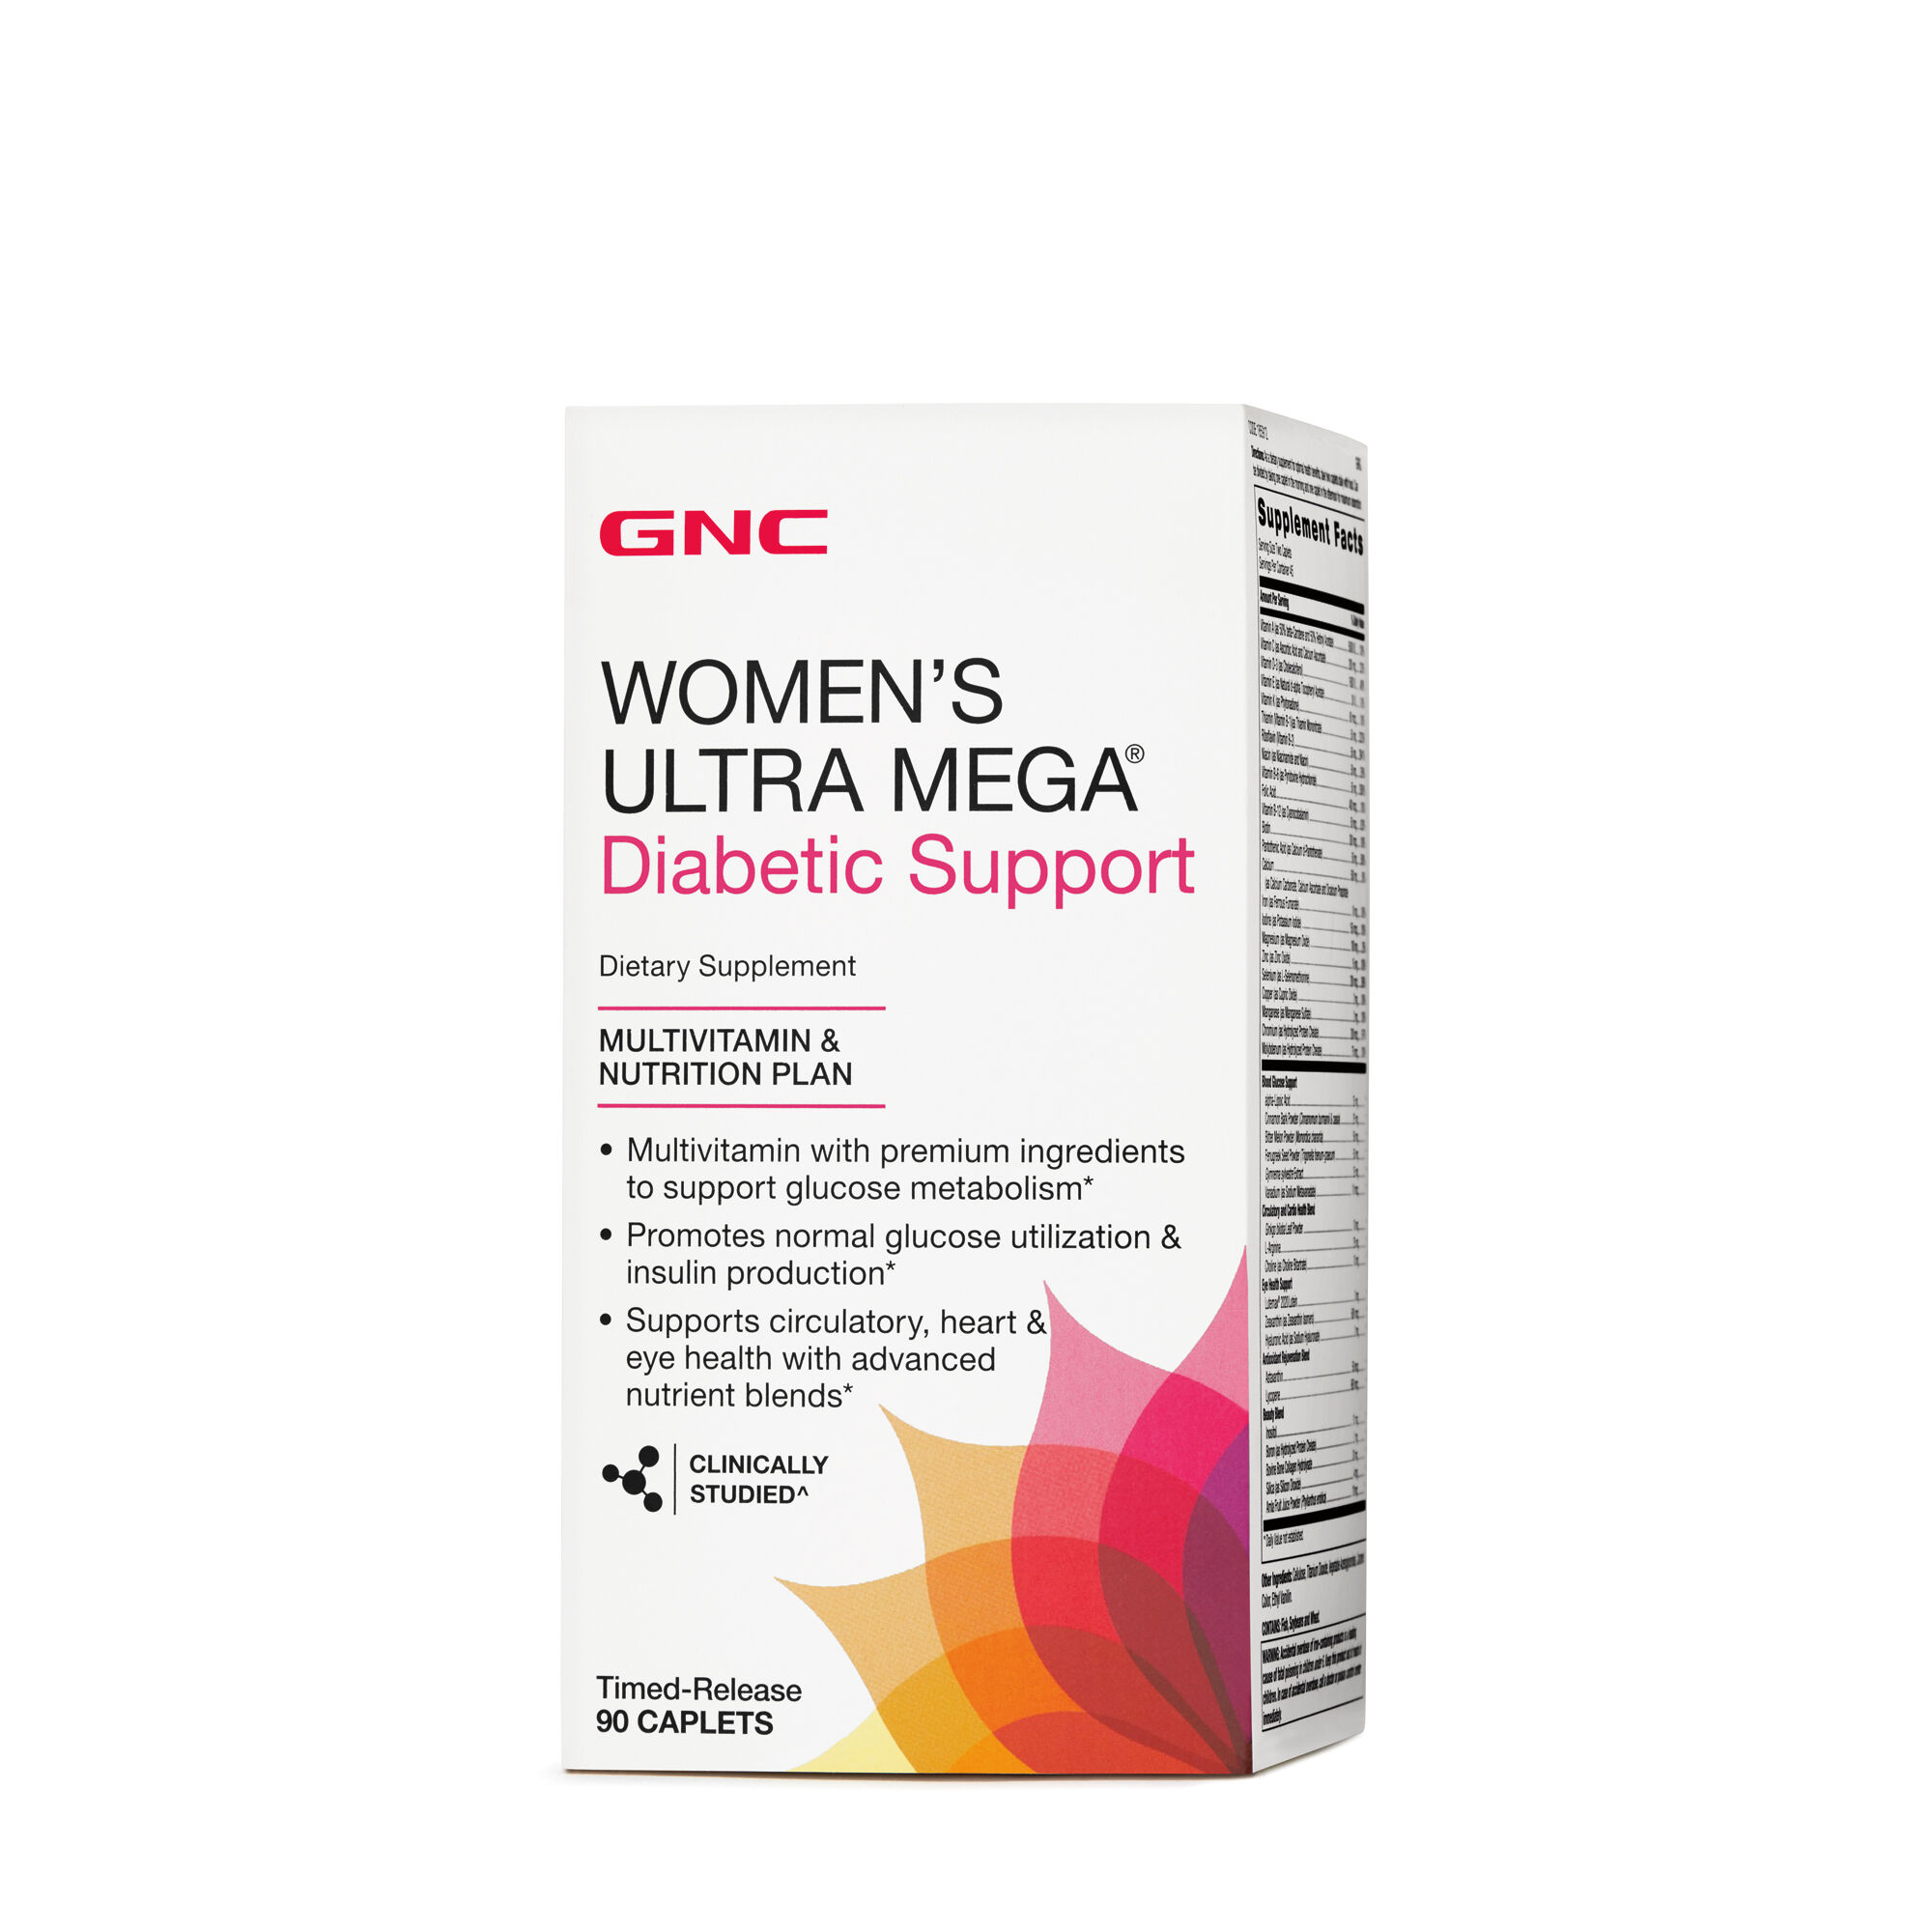 GNC Women's Ultra Mega Diabetic Support